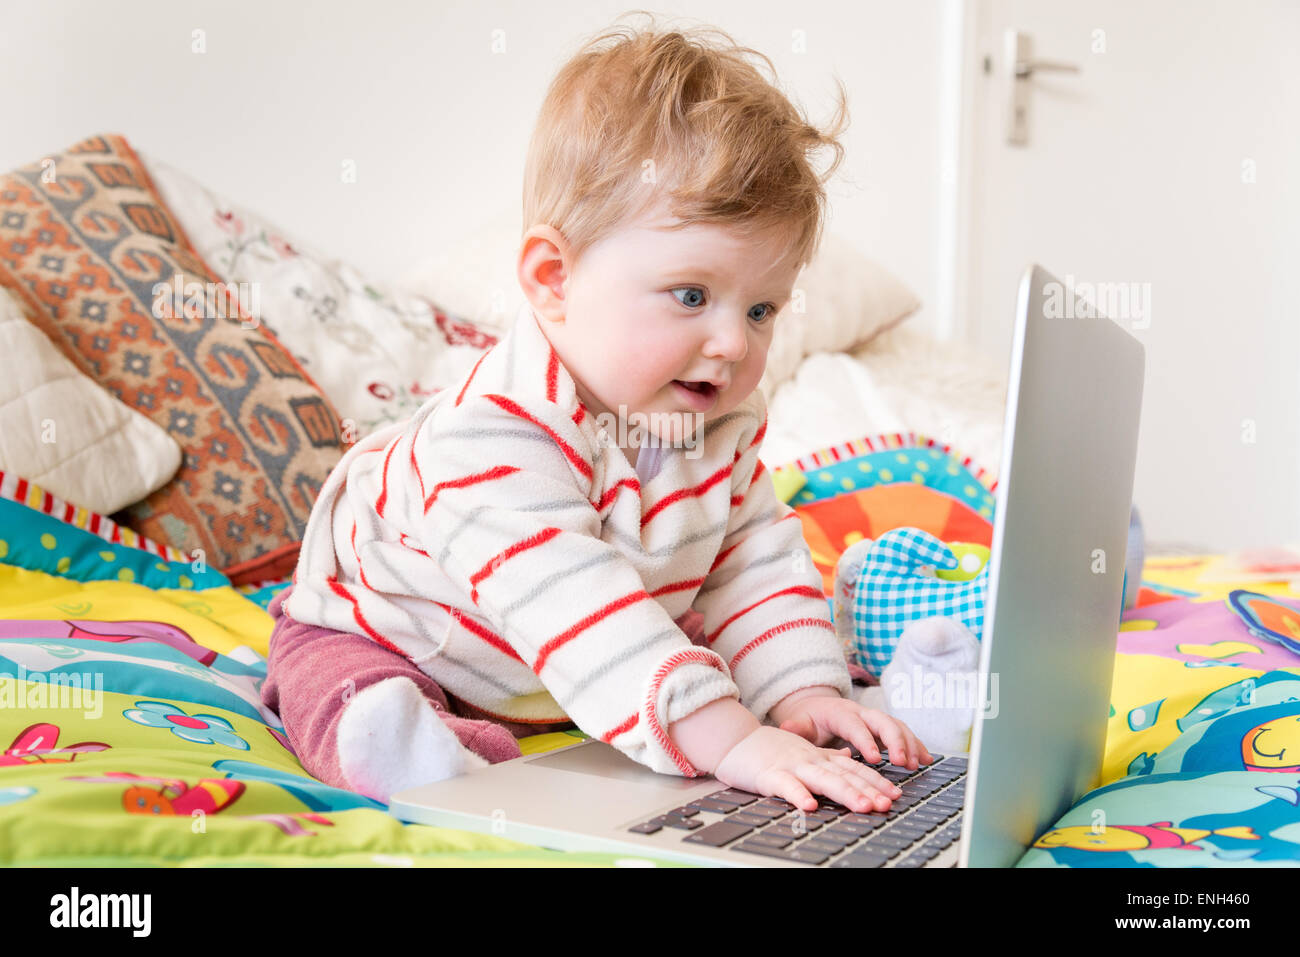 Eight month old baby using laptop computer - Stock Image